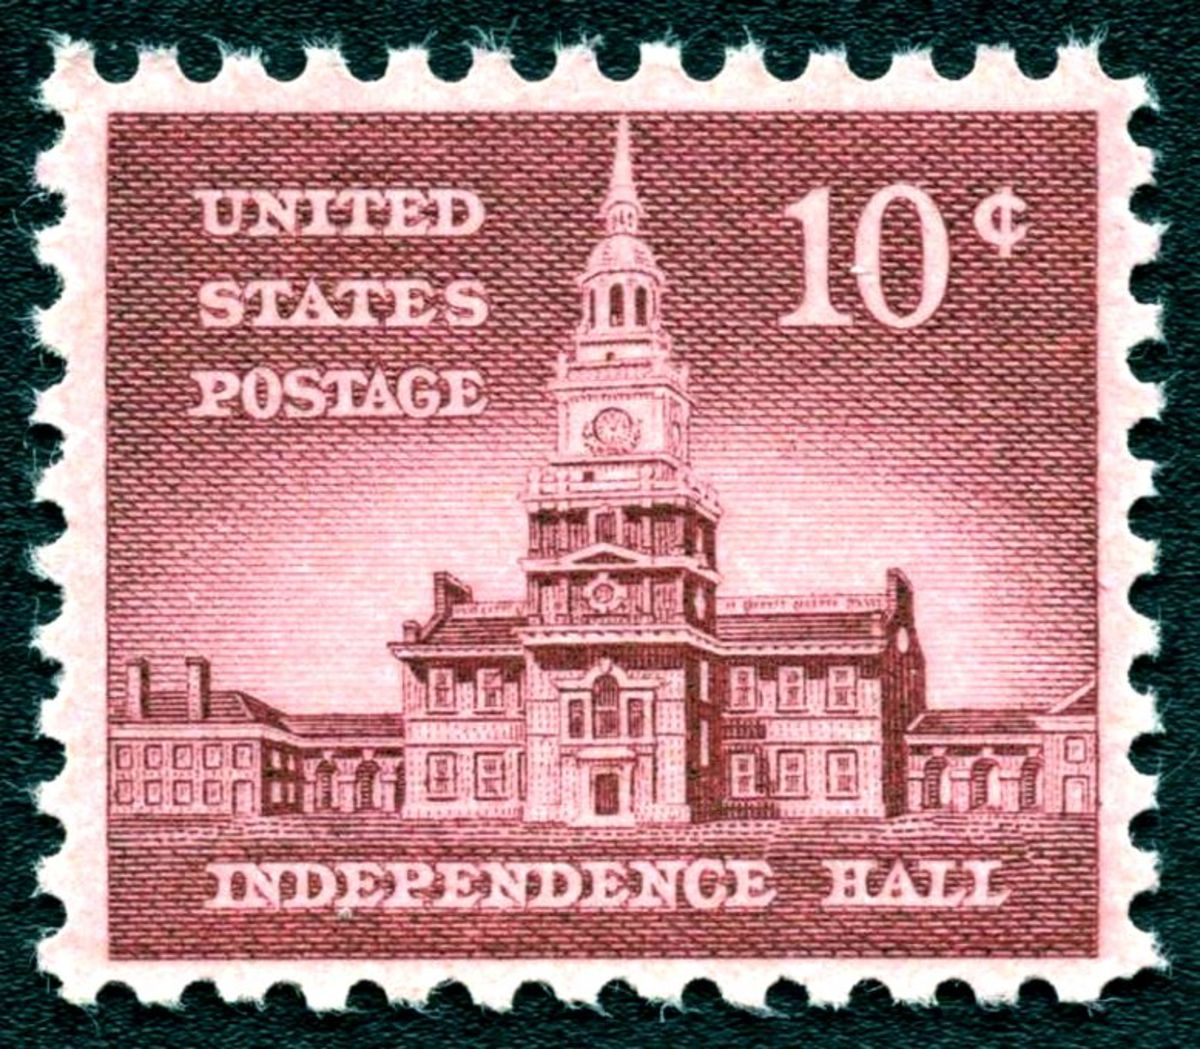 The American presidency was a creation of the framers of the Constitution at Philadelphia in 1787.